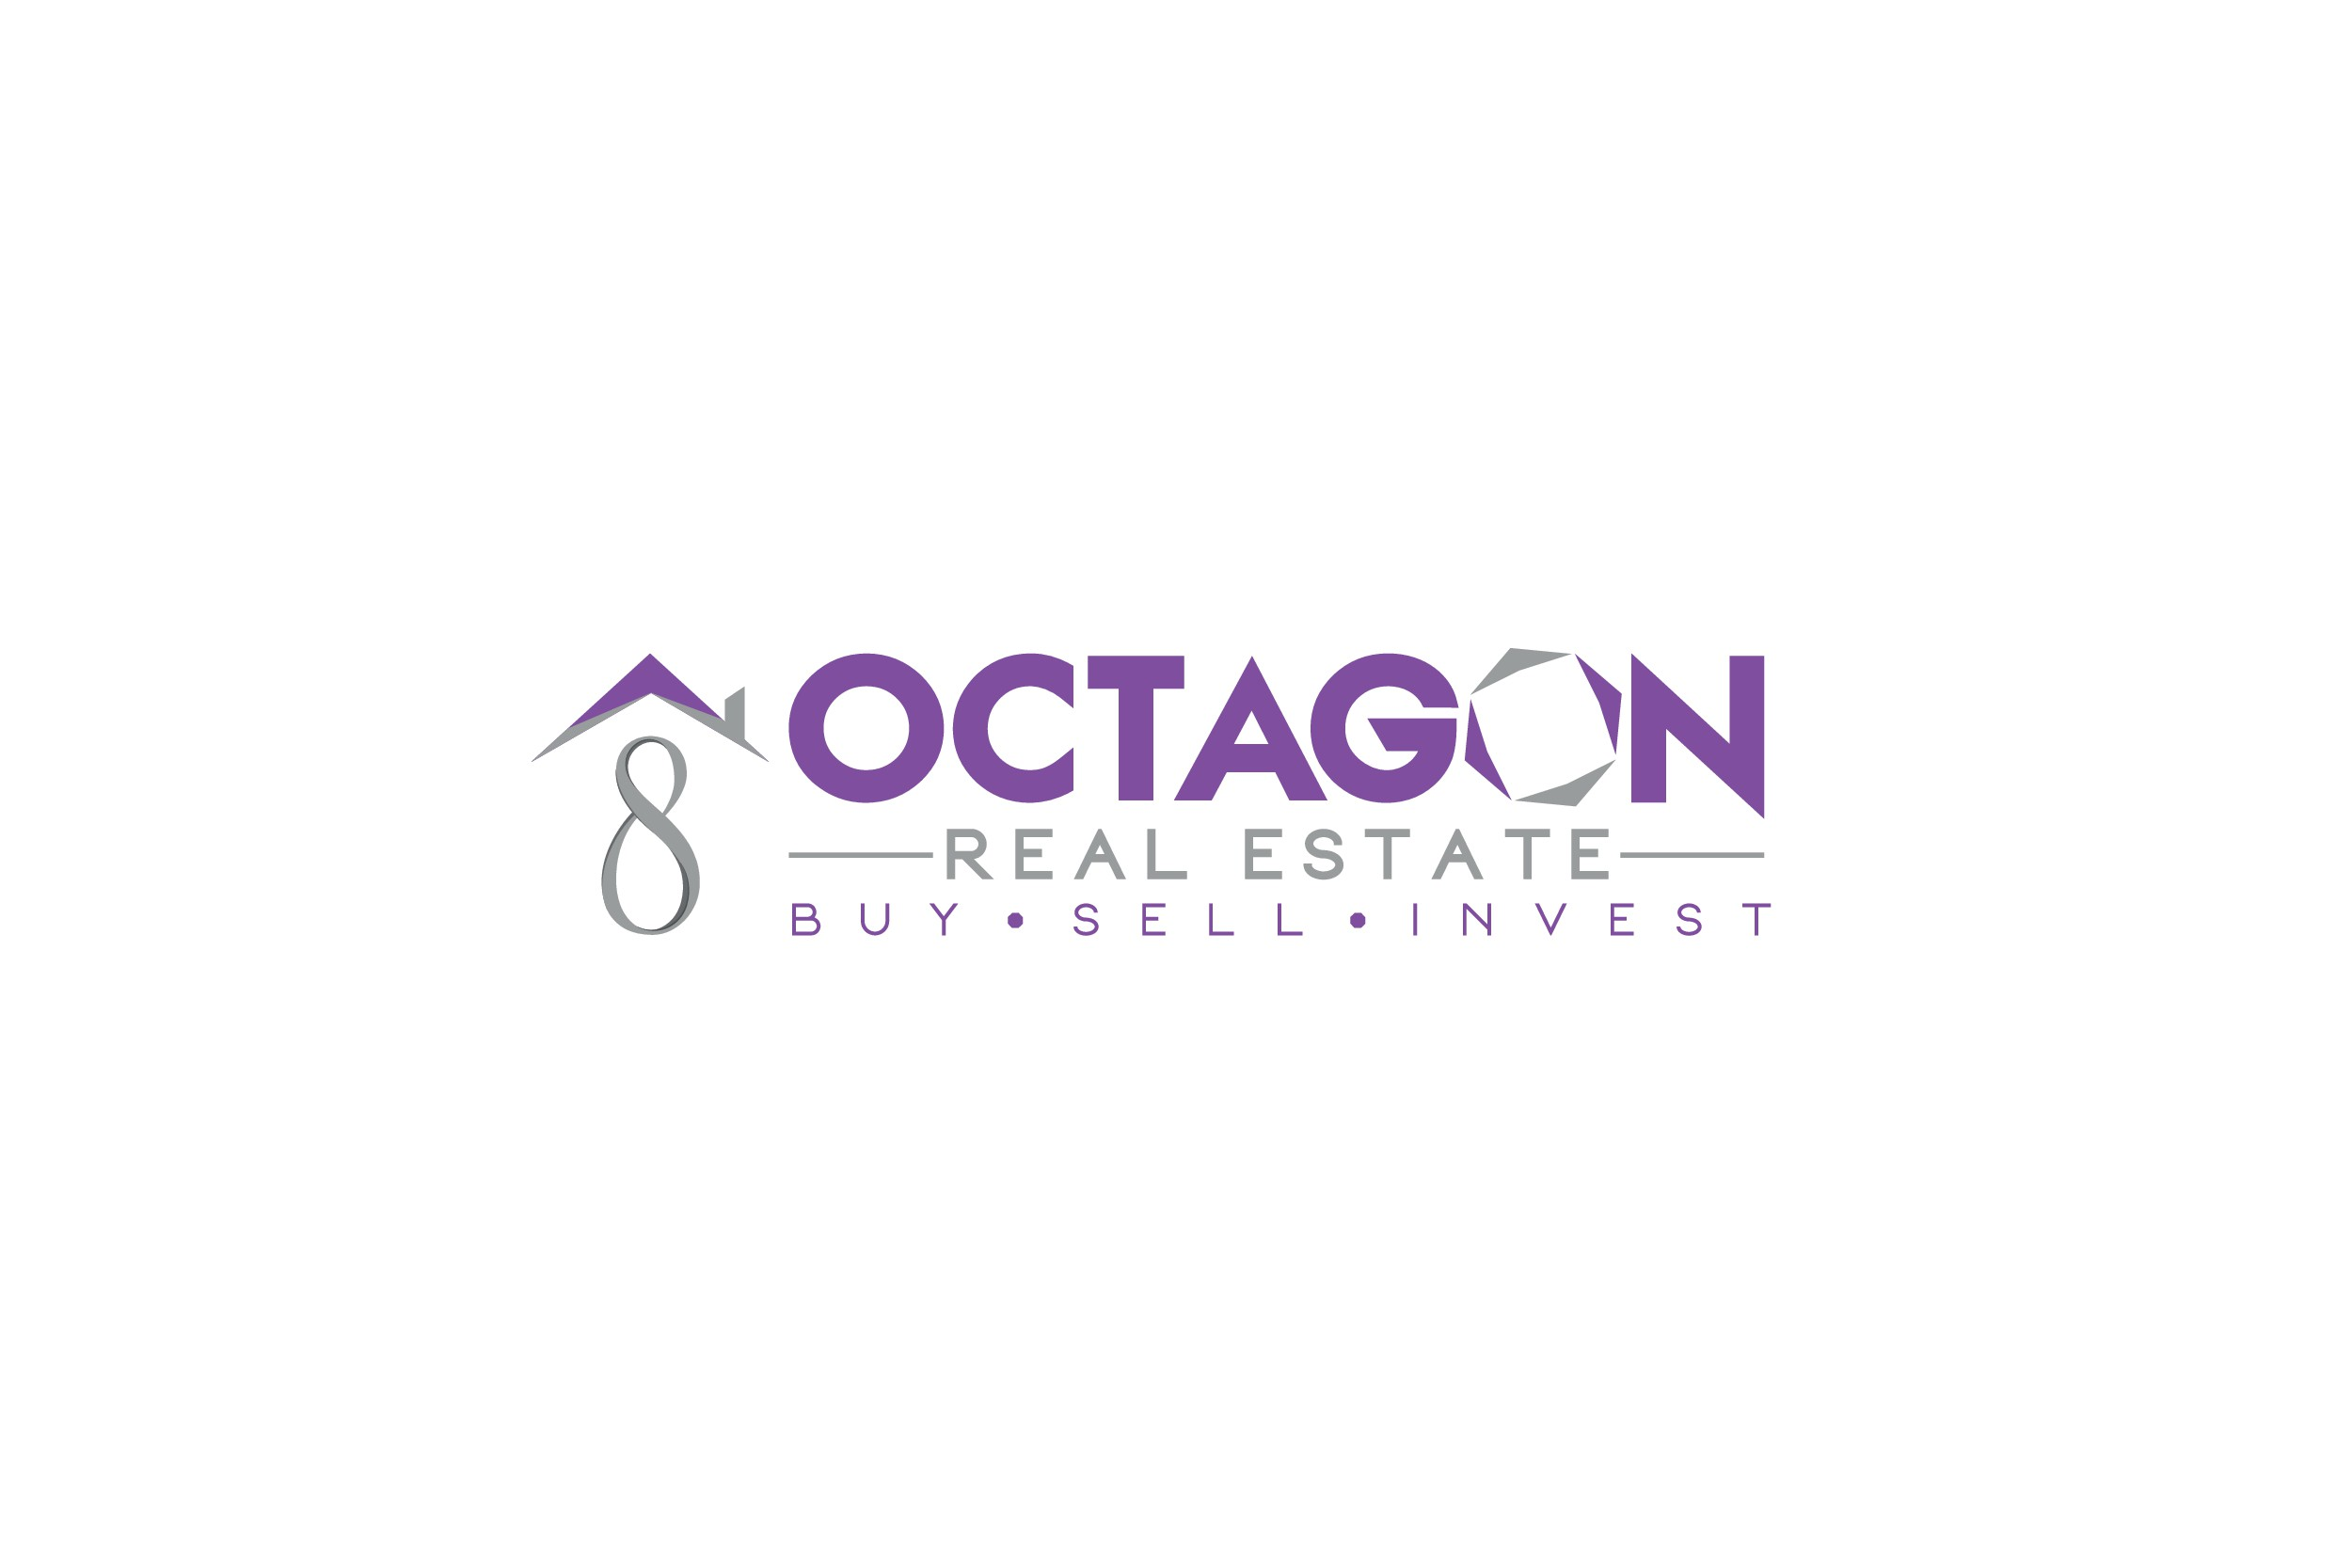 HIGH END REAL ESTATE COMPANY SEEKS SLEEK AND CONTEMPORARY LOGO